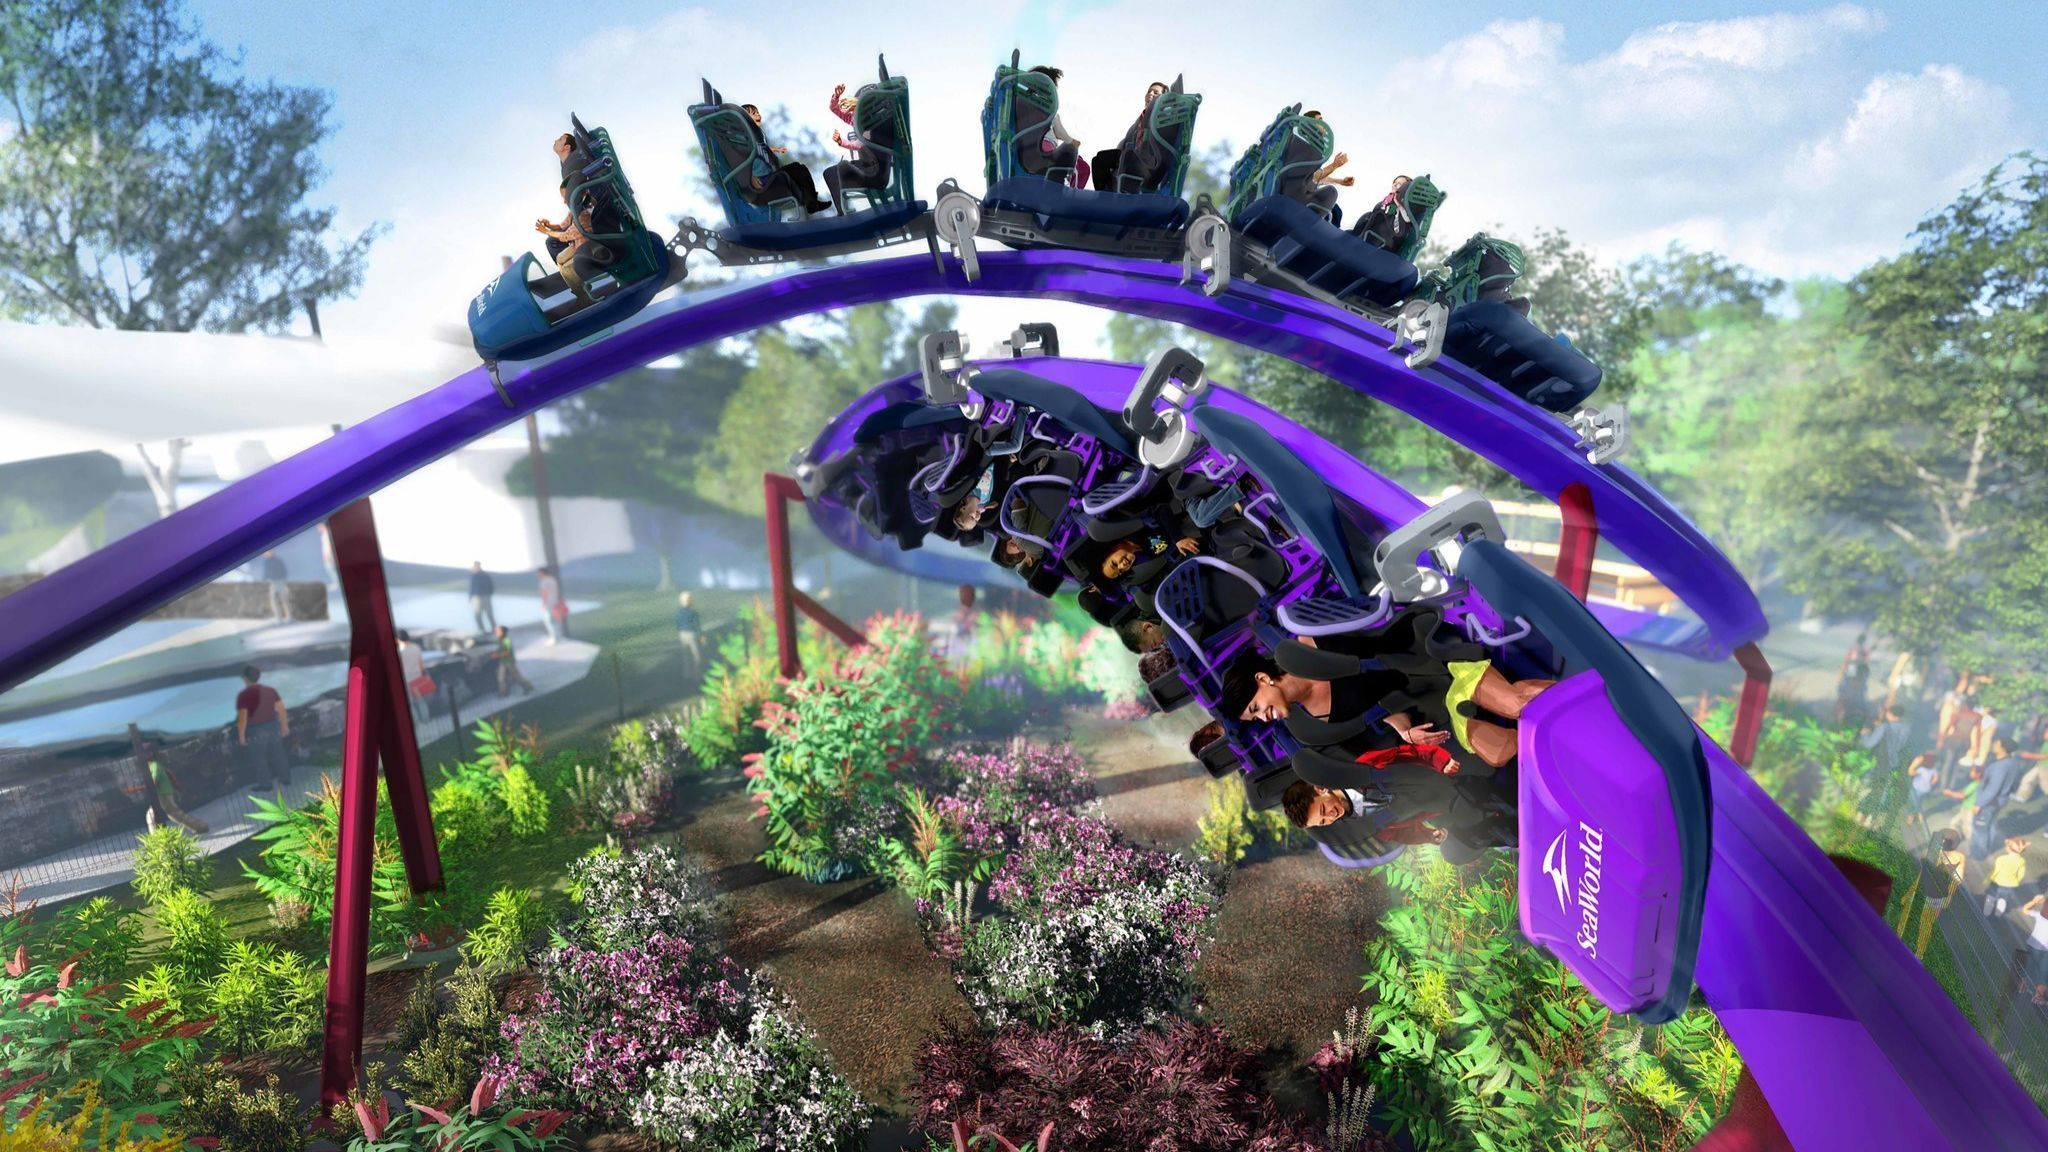 Is SeaWorld's Tidal Twister dueling coaster really a coaster and can it actually duel? | San Diego Union Tribune